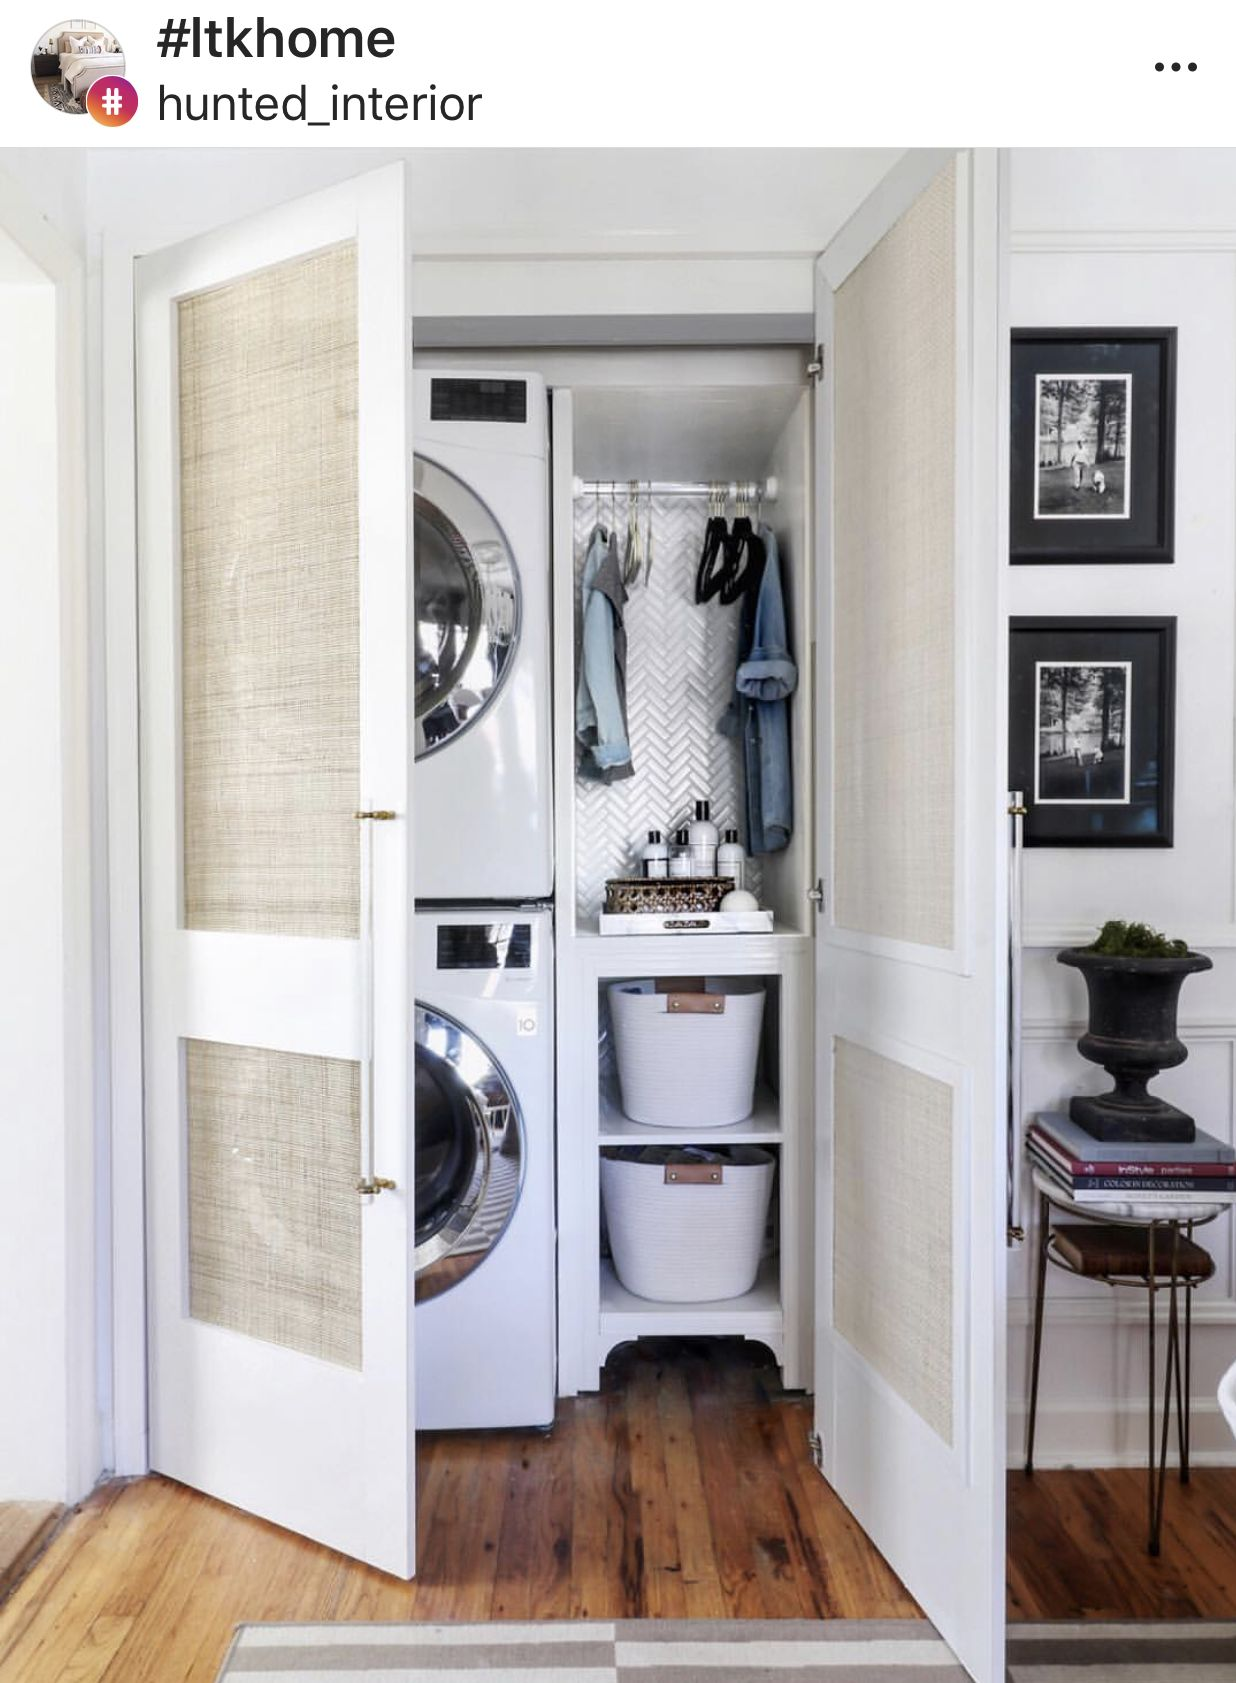 Pin by wayneen driscoll on organizing Laundry room closet